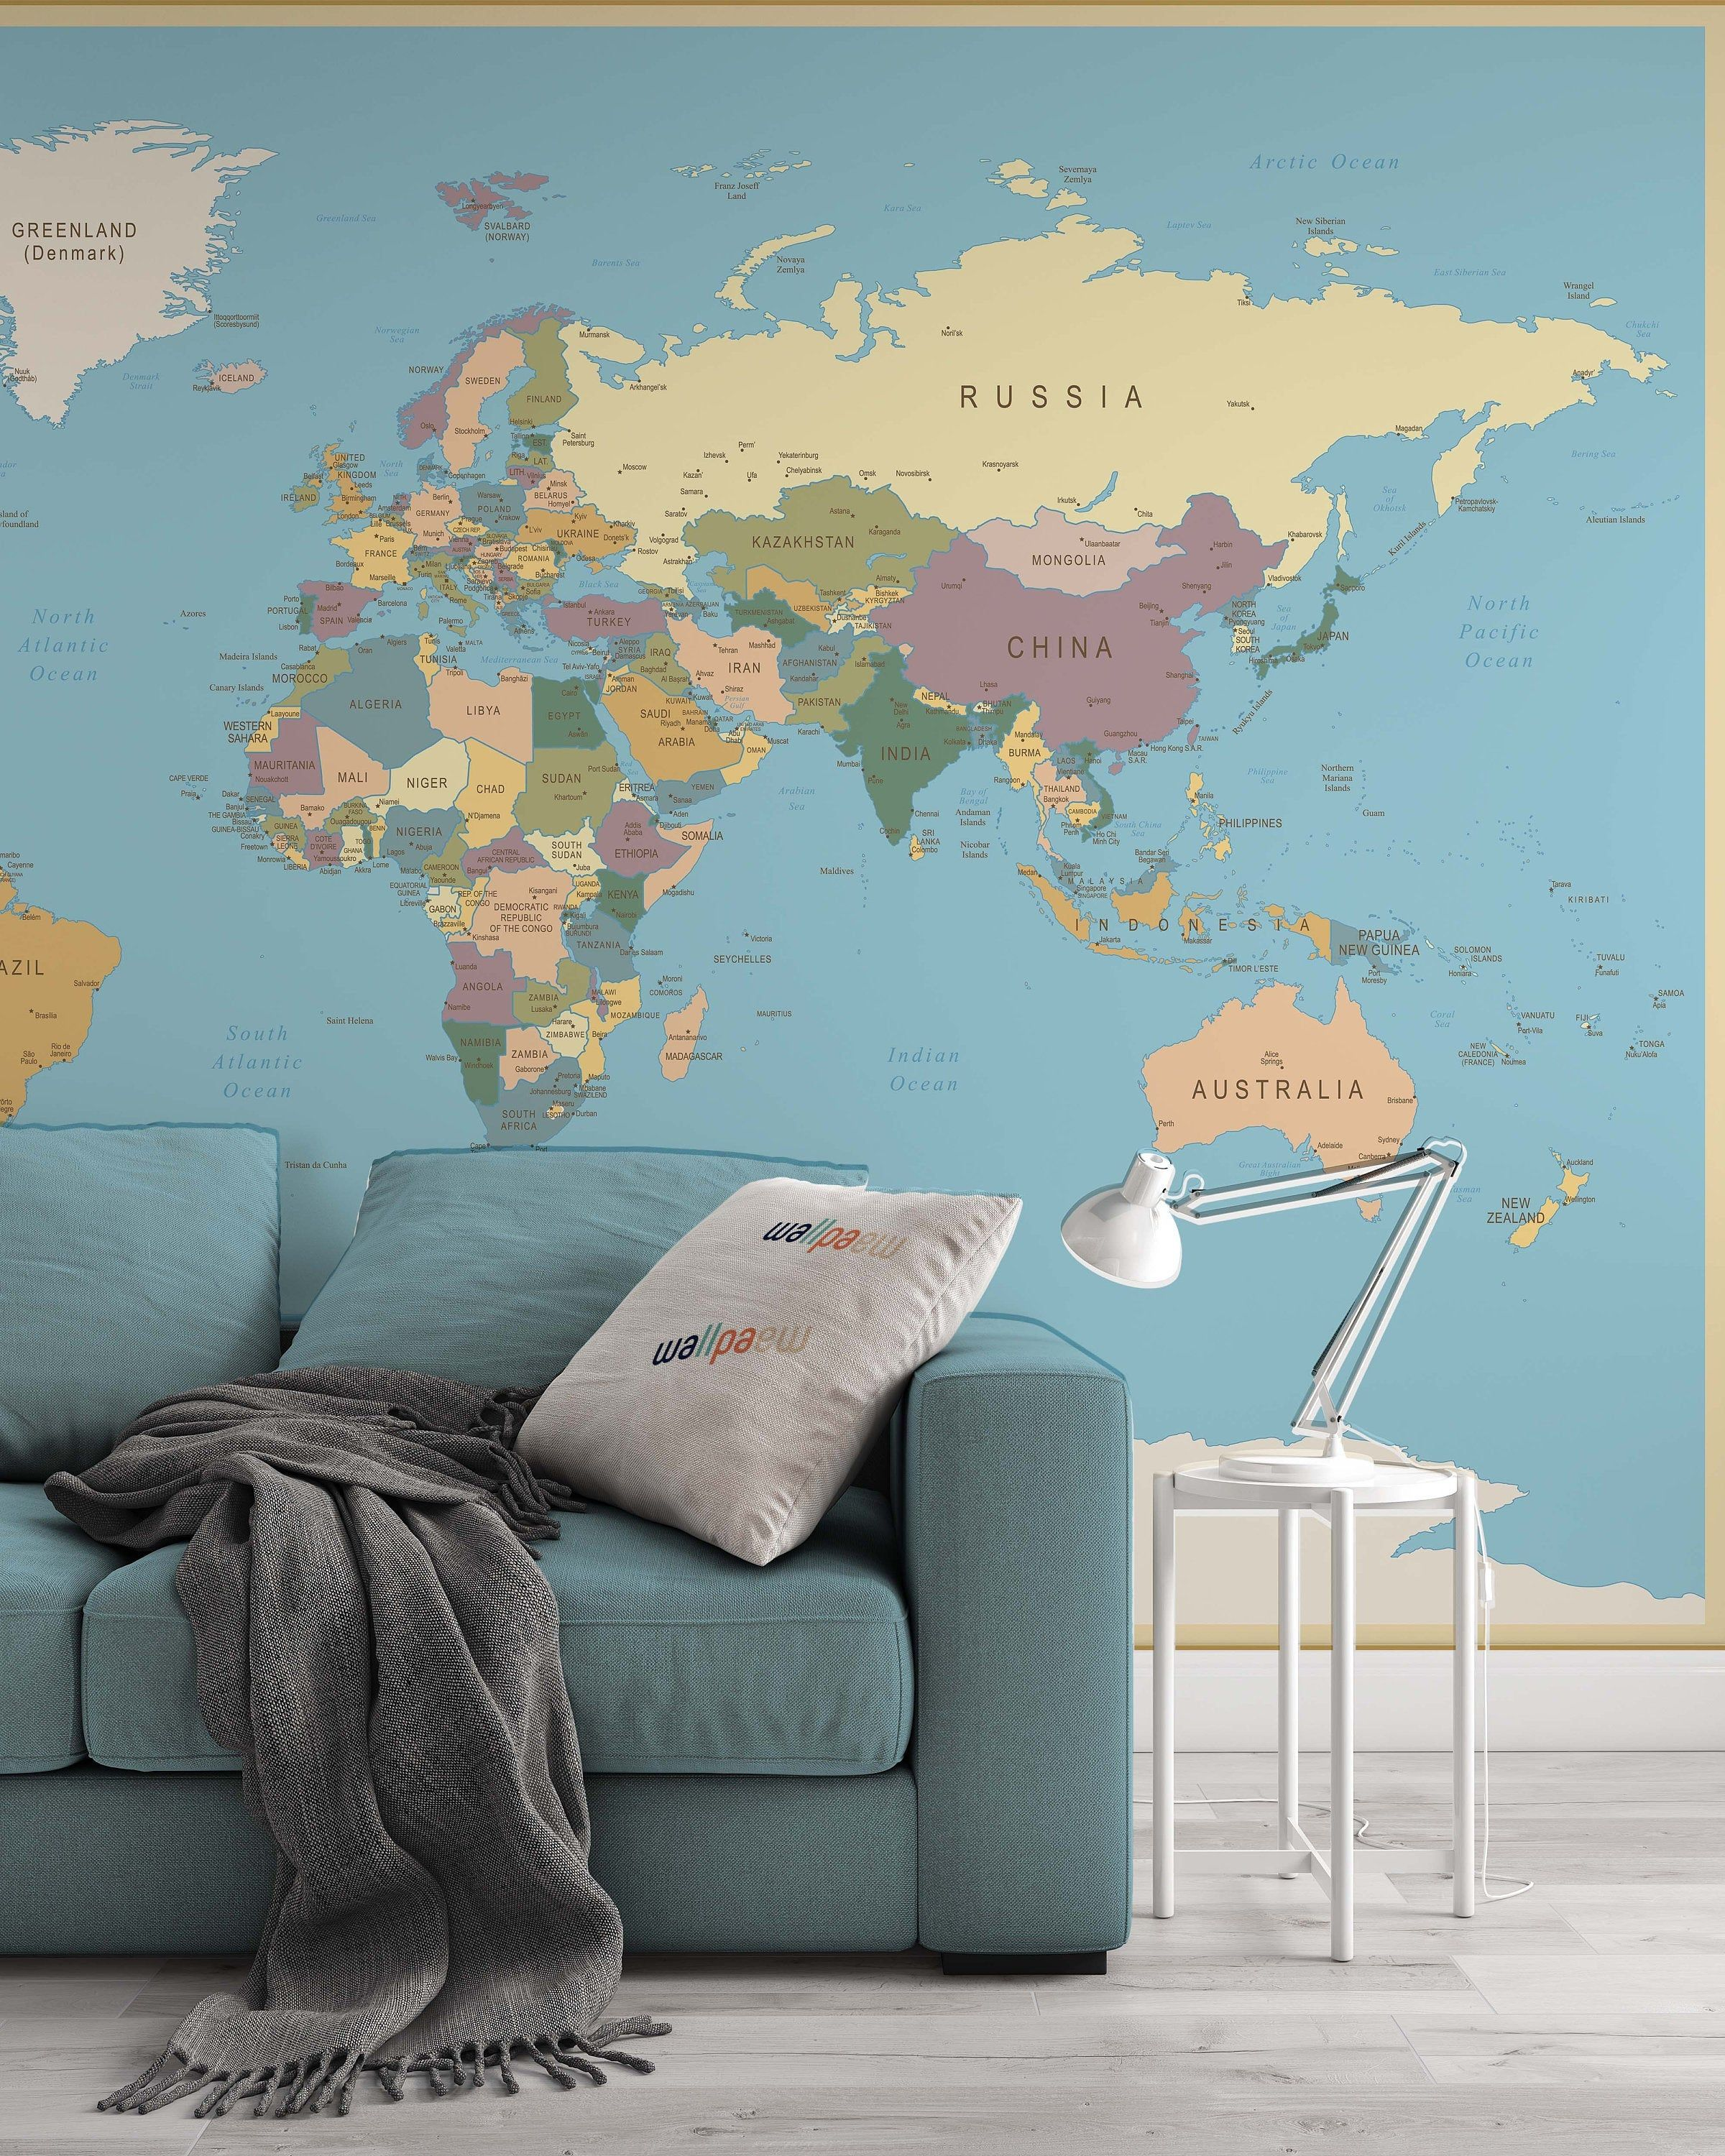 Travelling Vintage World Map Wallpaper Self Adhesive Peel And Etsy Living Room Murals Map Wall Art Bedroom World Map Wallpaper